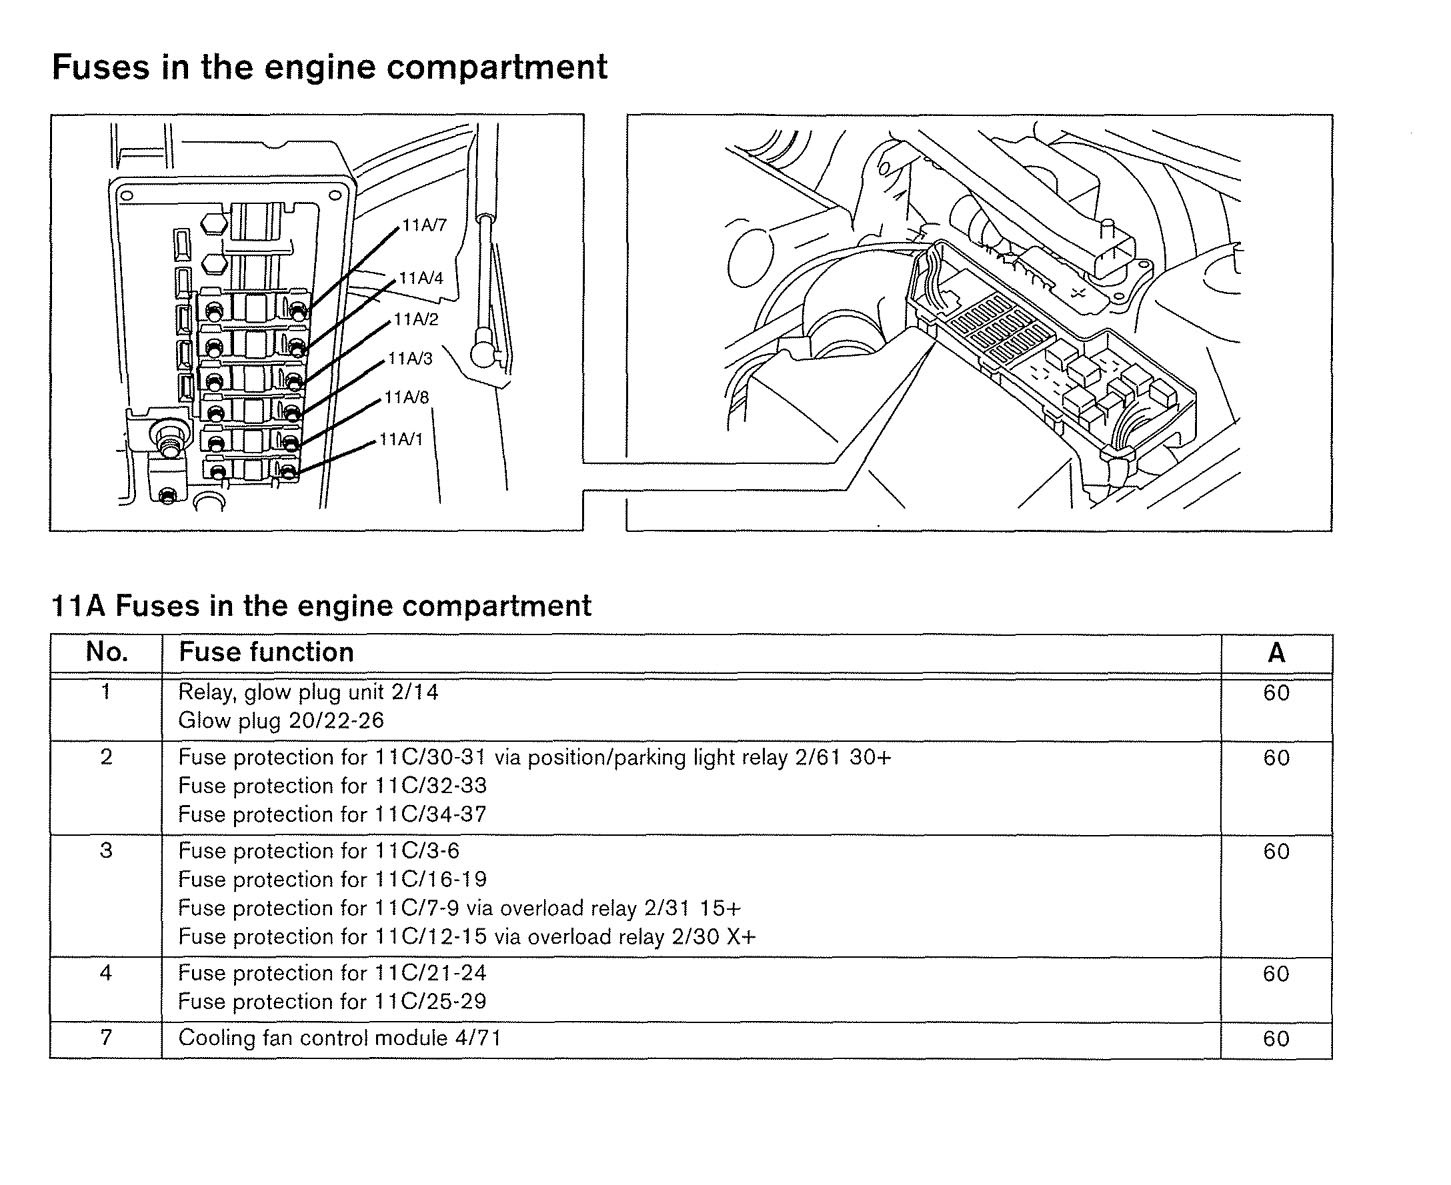 Volvo Xc70 Fuse Box Diagram | Wiring Diagram on volvo 240 window relay installation, volvo gl wagon, lexus fuse diagram, mini fuse diagram, dodge fuse diagram, toyota fuse diagram, scion fuse diagram, volvo fuses and relays, isuzu fuse diagram, ac fuse diagram, freightliner fuse diagram, mgb fuse diagram, volvo truck fuse box location, buick fuse diagram, volvo s80 fuse box location, jaguar fuse diagram, bass tracker fuse diagram, ford fuse diagram, miata fuse diagram, bmw fuse diagram,